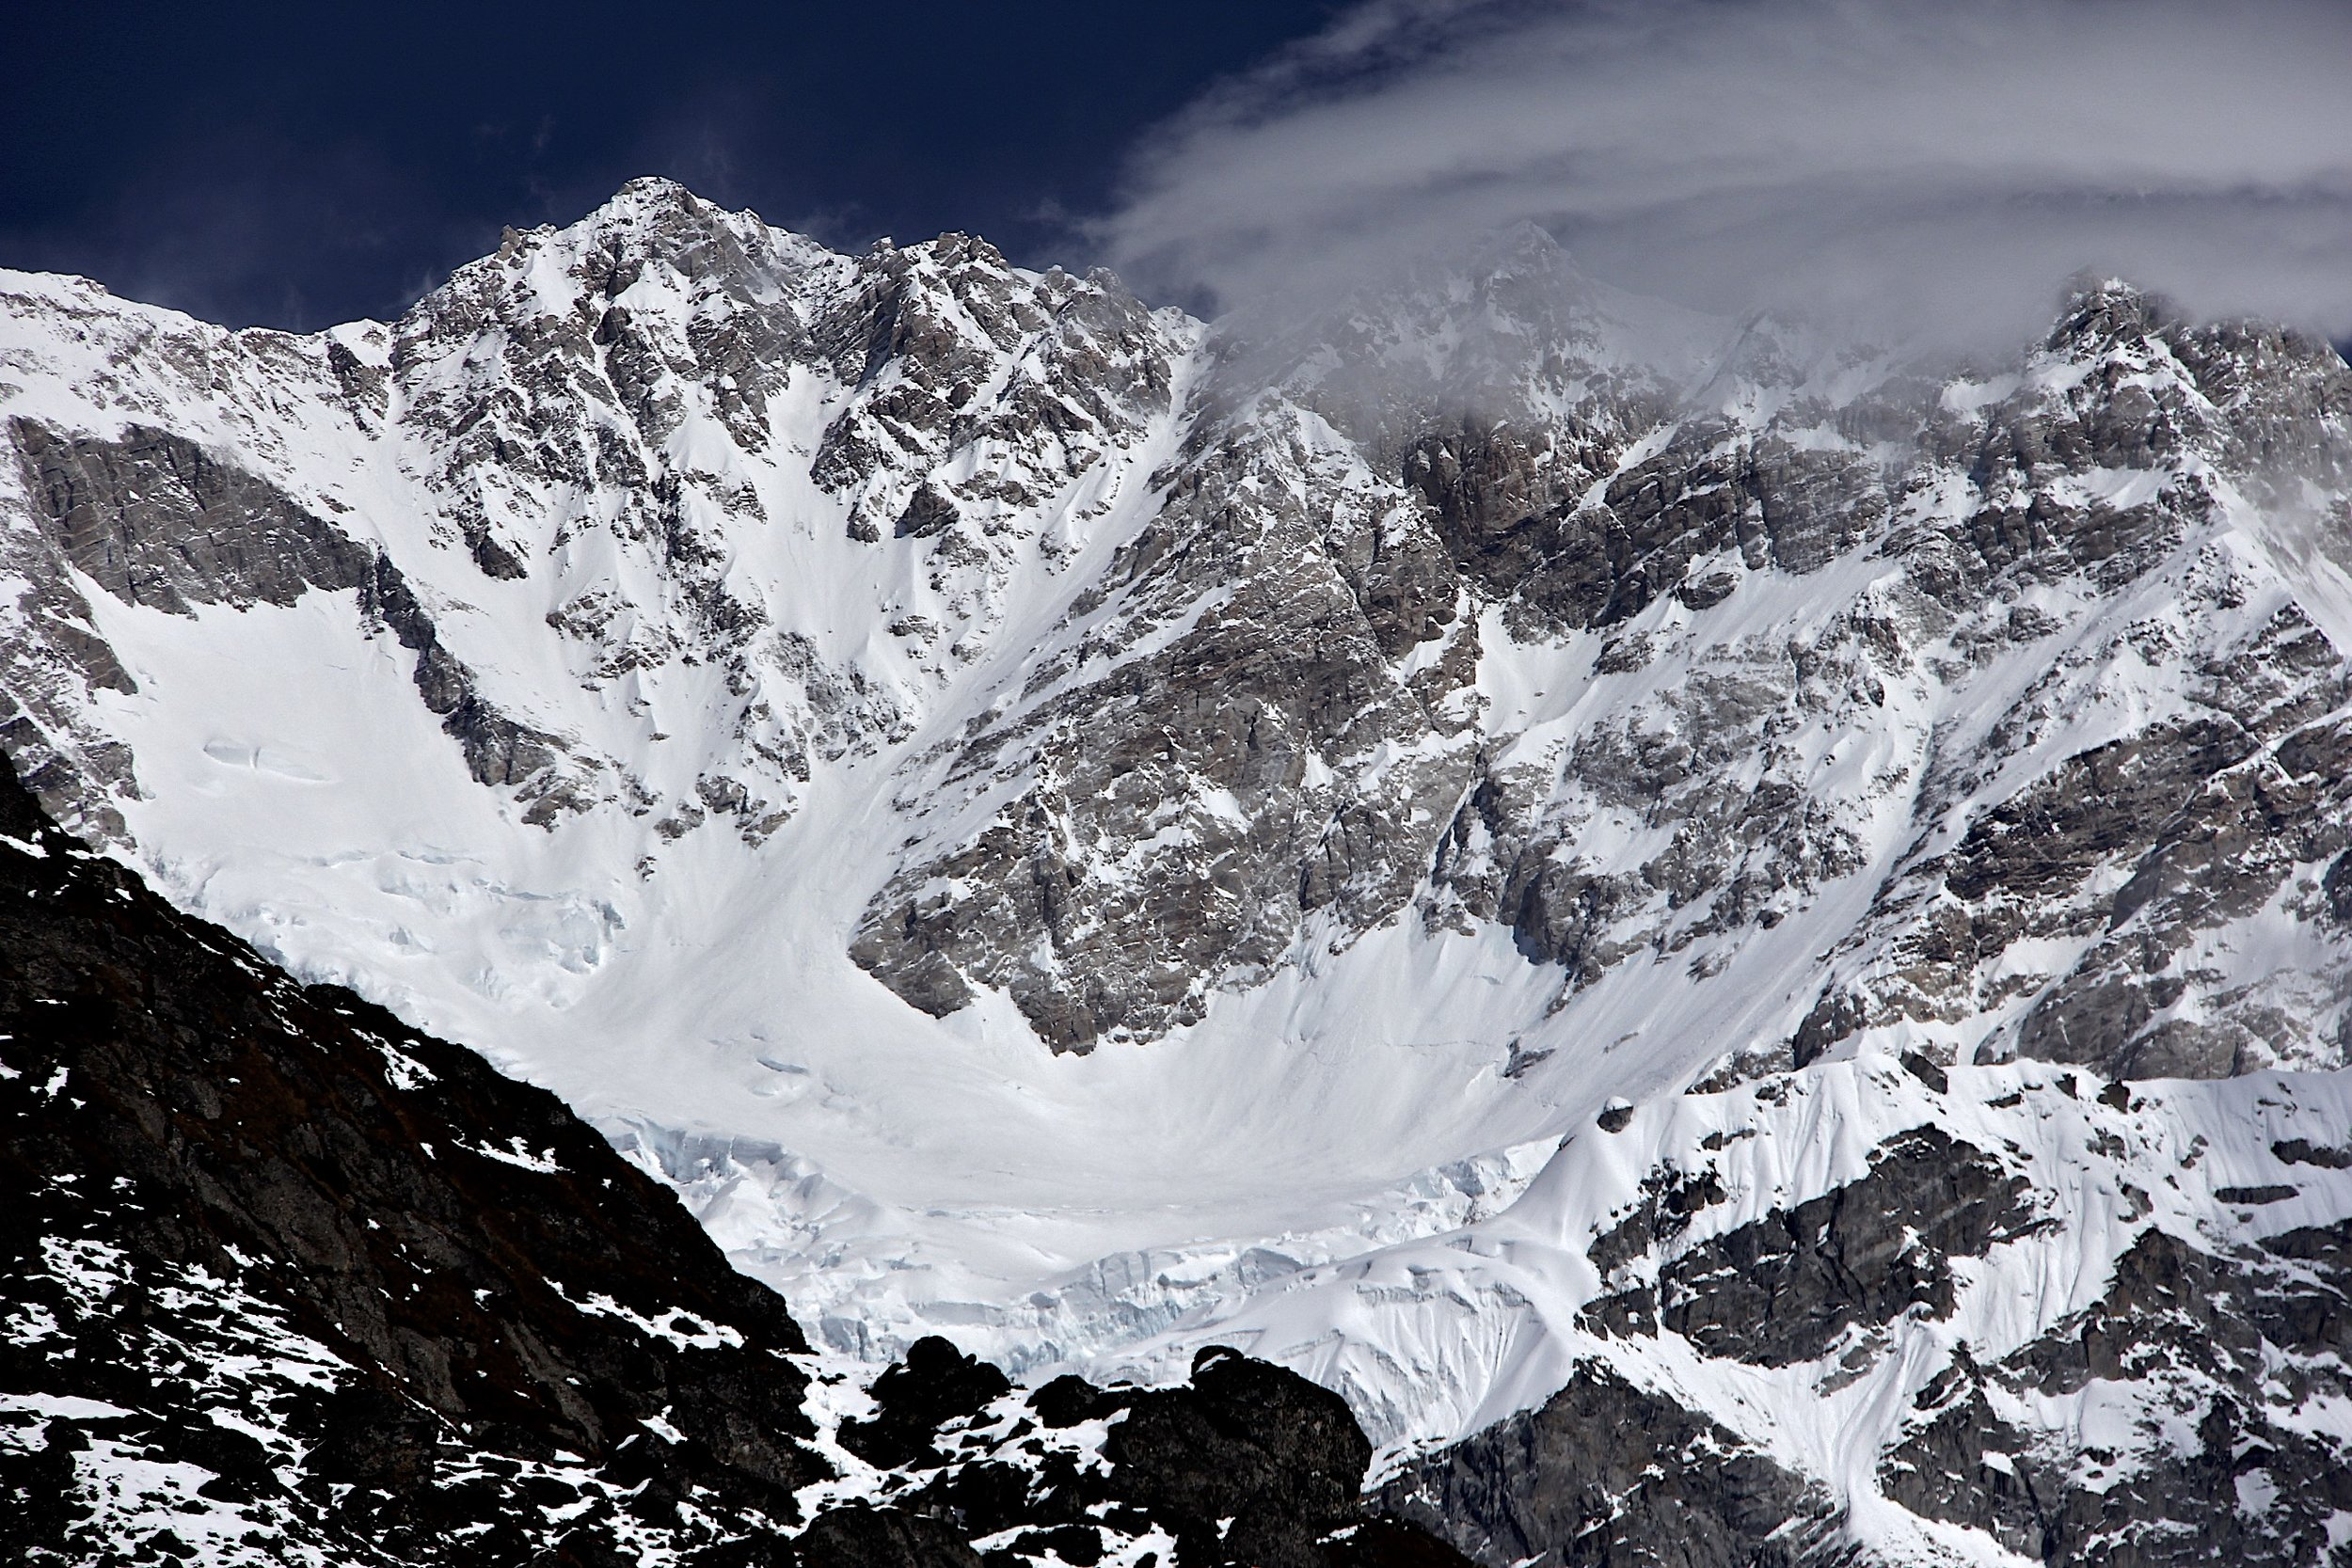 Kanchendzonga 8,586m (left), Kanchendzonga Central (in the clouds) 8,482m